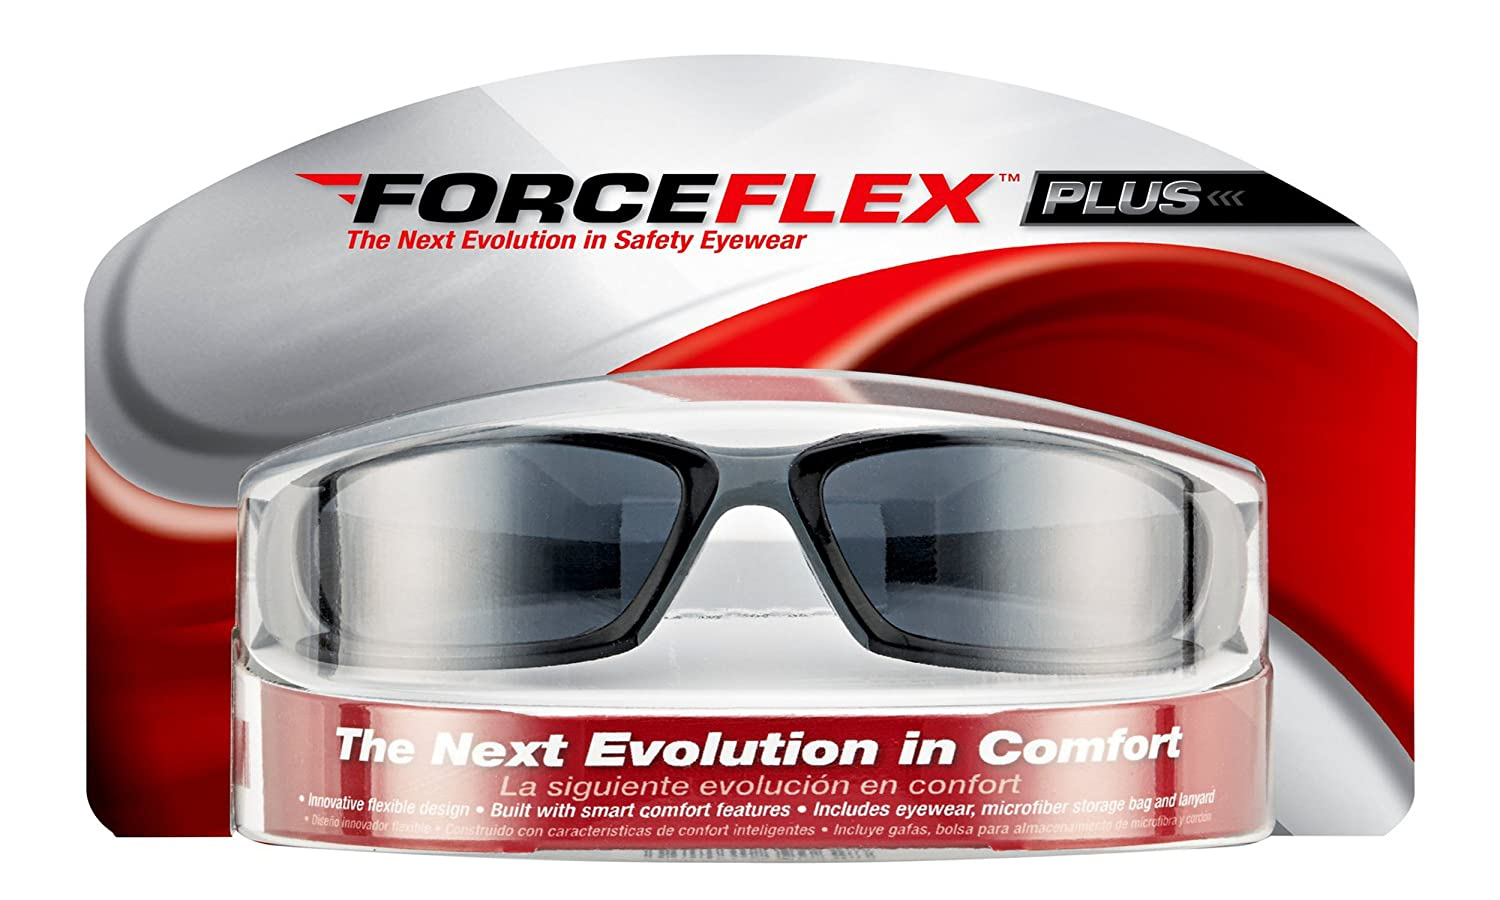 3M 92235-WZ4 ForceFlex Plus Safety Eyewear with Scratch Resistant Lens (4/Case), Frame: Black/Grey & Lens: Grey